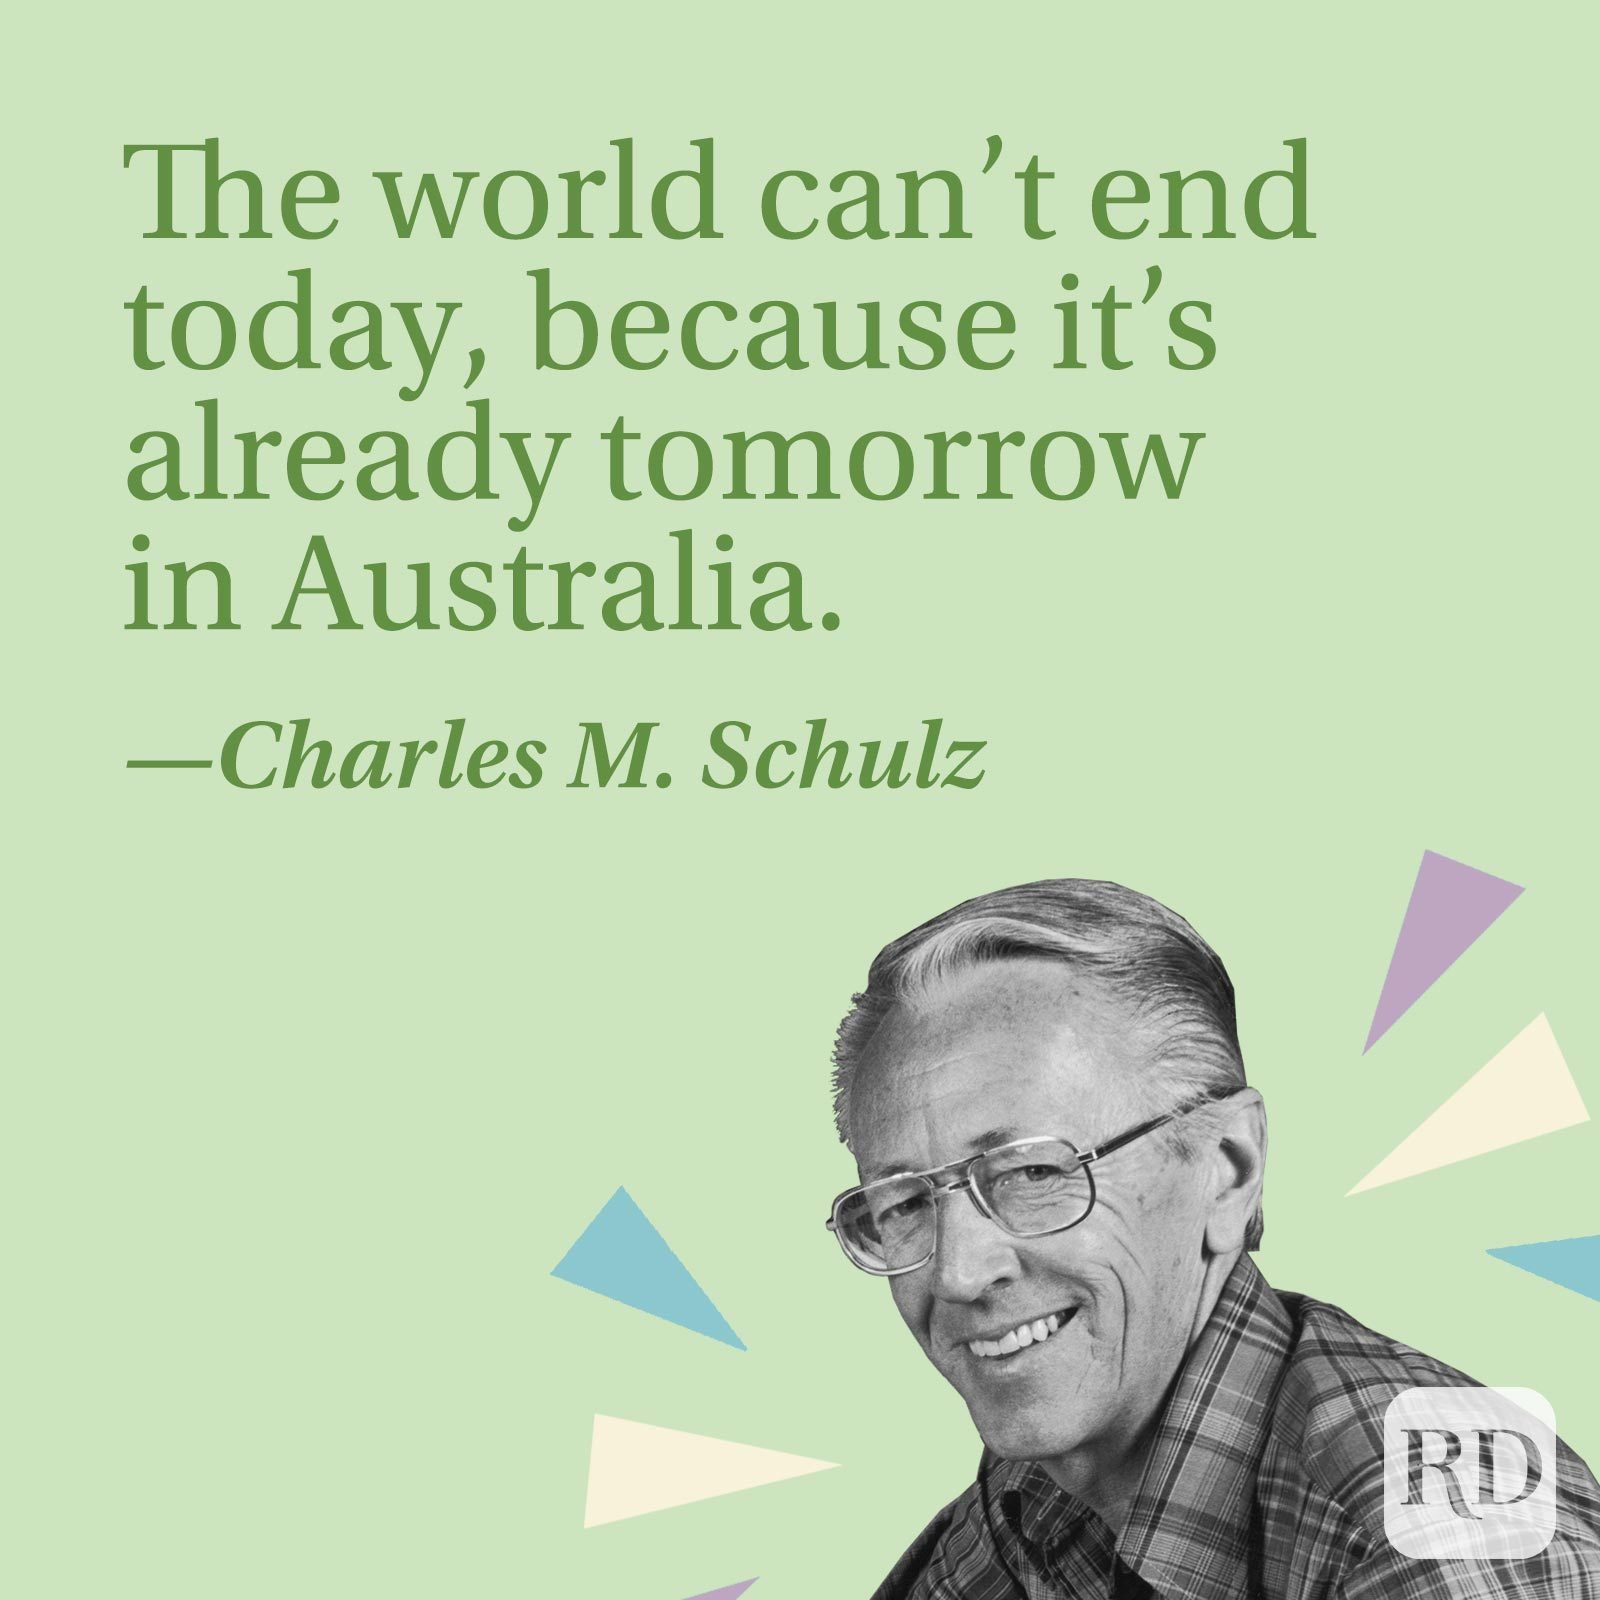 The world can't end today, because it's already tomorrow in Australia.—Charles M. Schulz